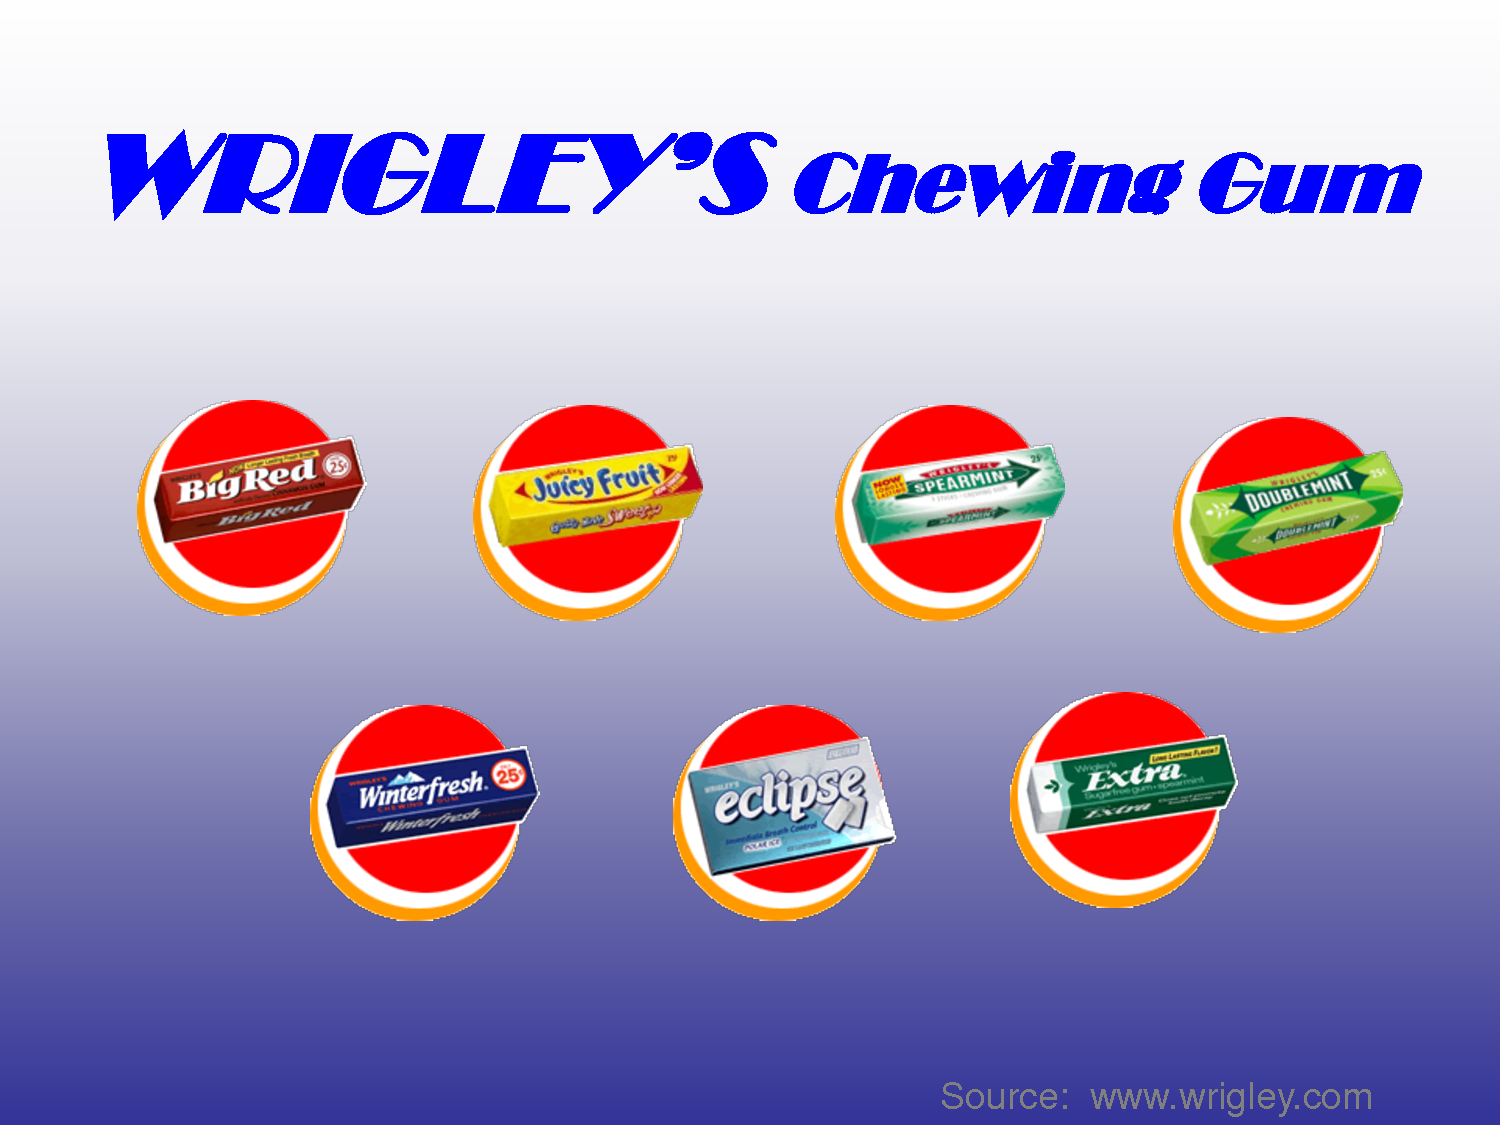 Wrigleys gum ass wrigley mars gum and oral care ads wrigleys gum ass thecheapjerseys Image collections